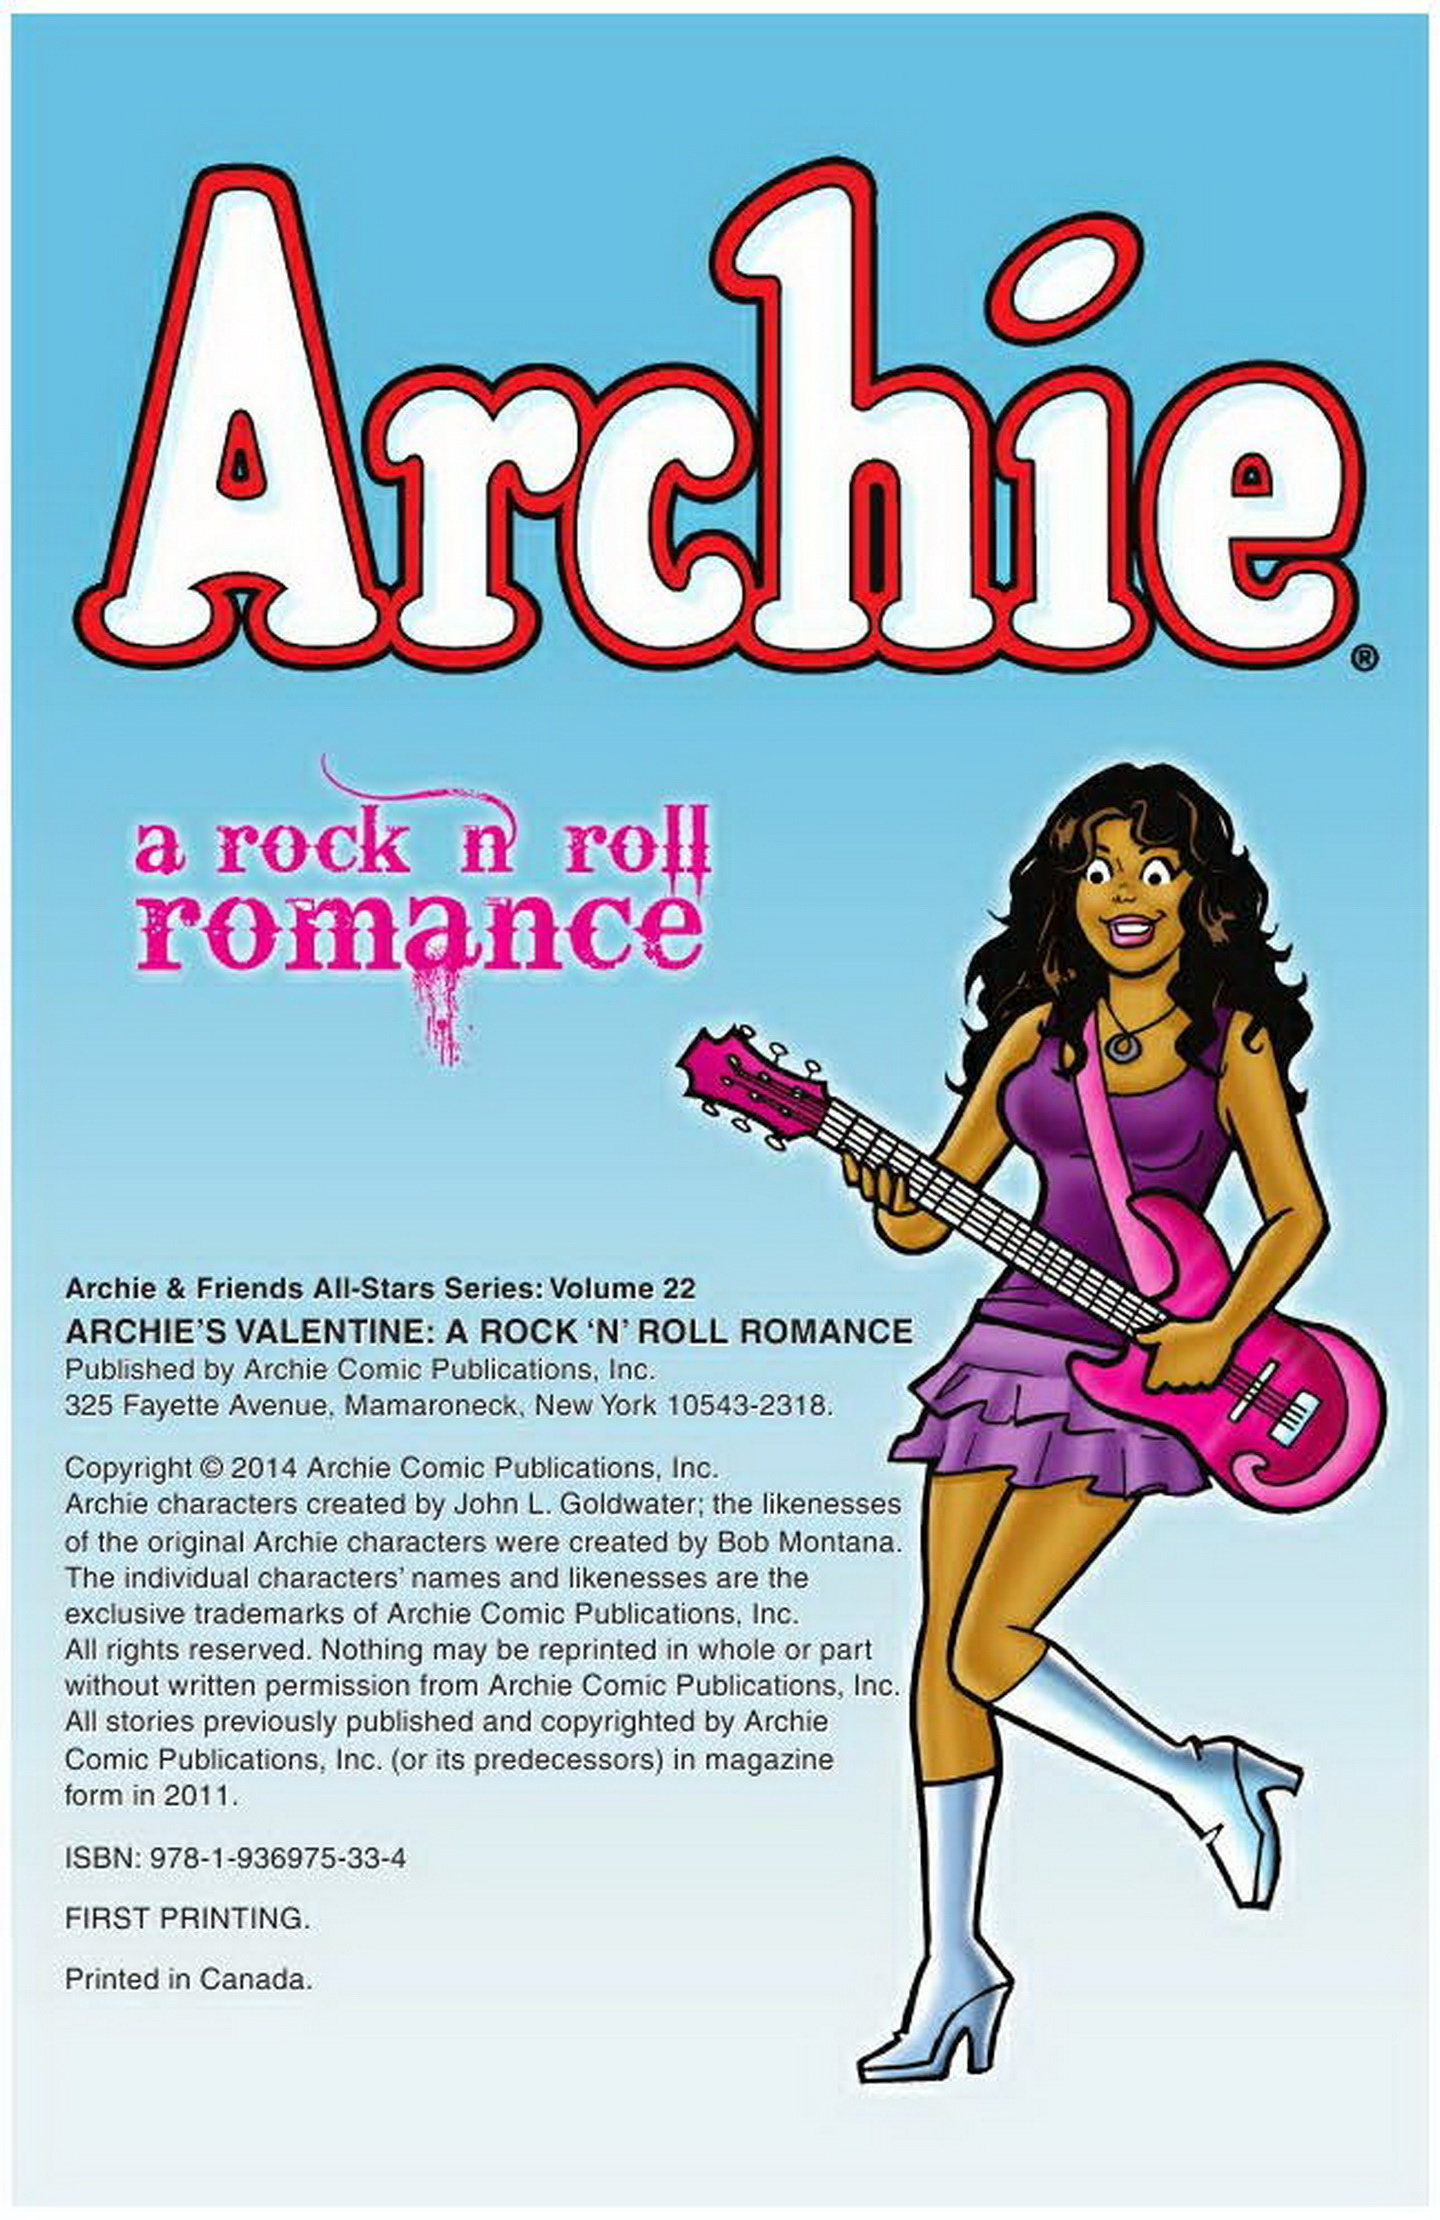 Read online Archie: A Rock 'n' Roll Romance comic -  Issue #Archie: A Rock 'n' Roll Romance Full - 2